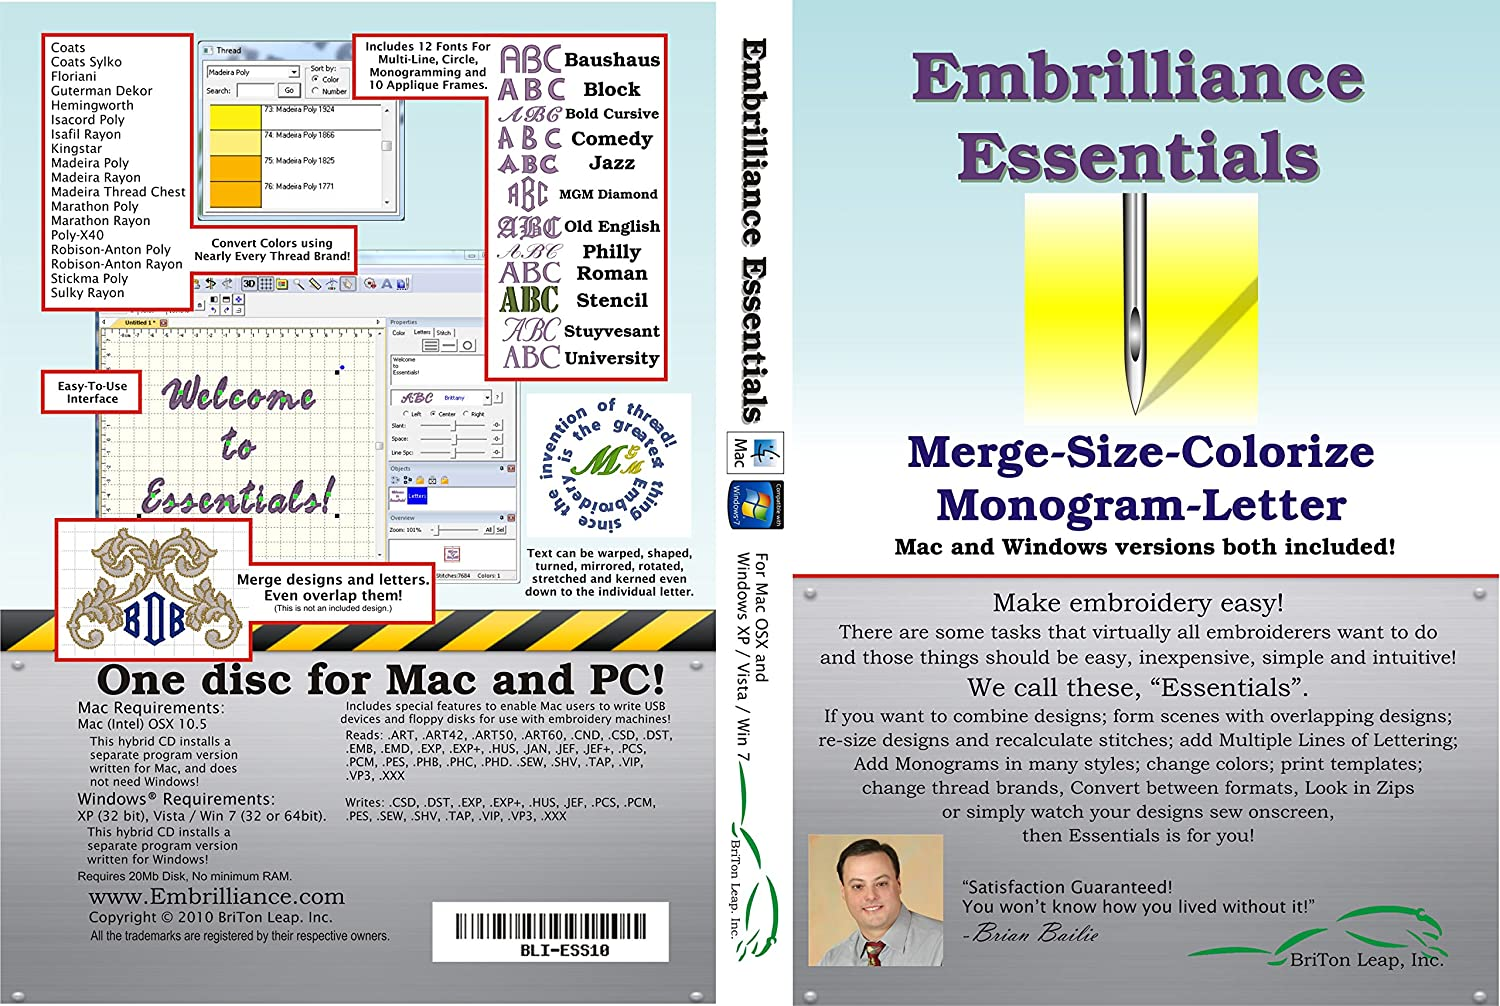 Embroidery Software-Best rich-features: Embrilliance Essentials Software for MAC and PC